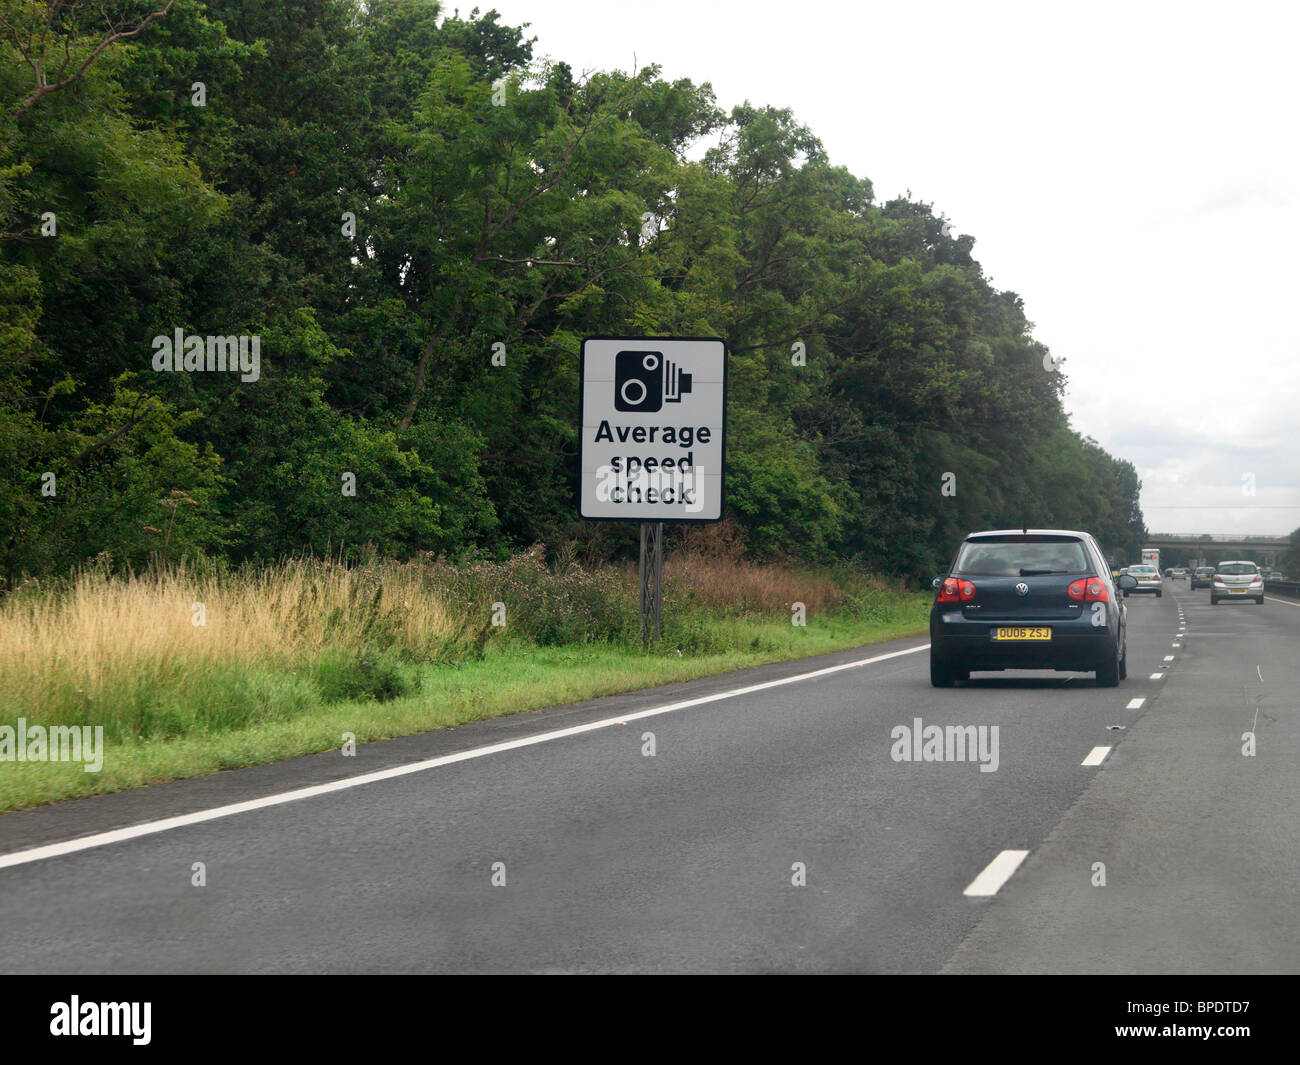 Sign For Average Speed Checking On Motorway England - Stock Image